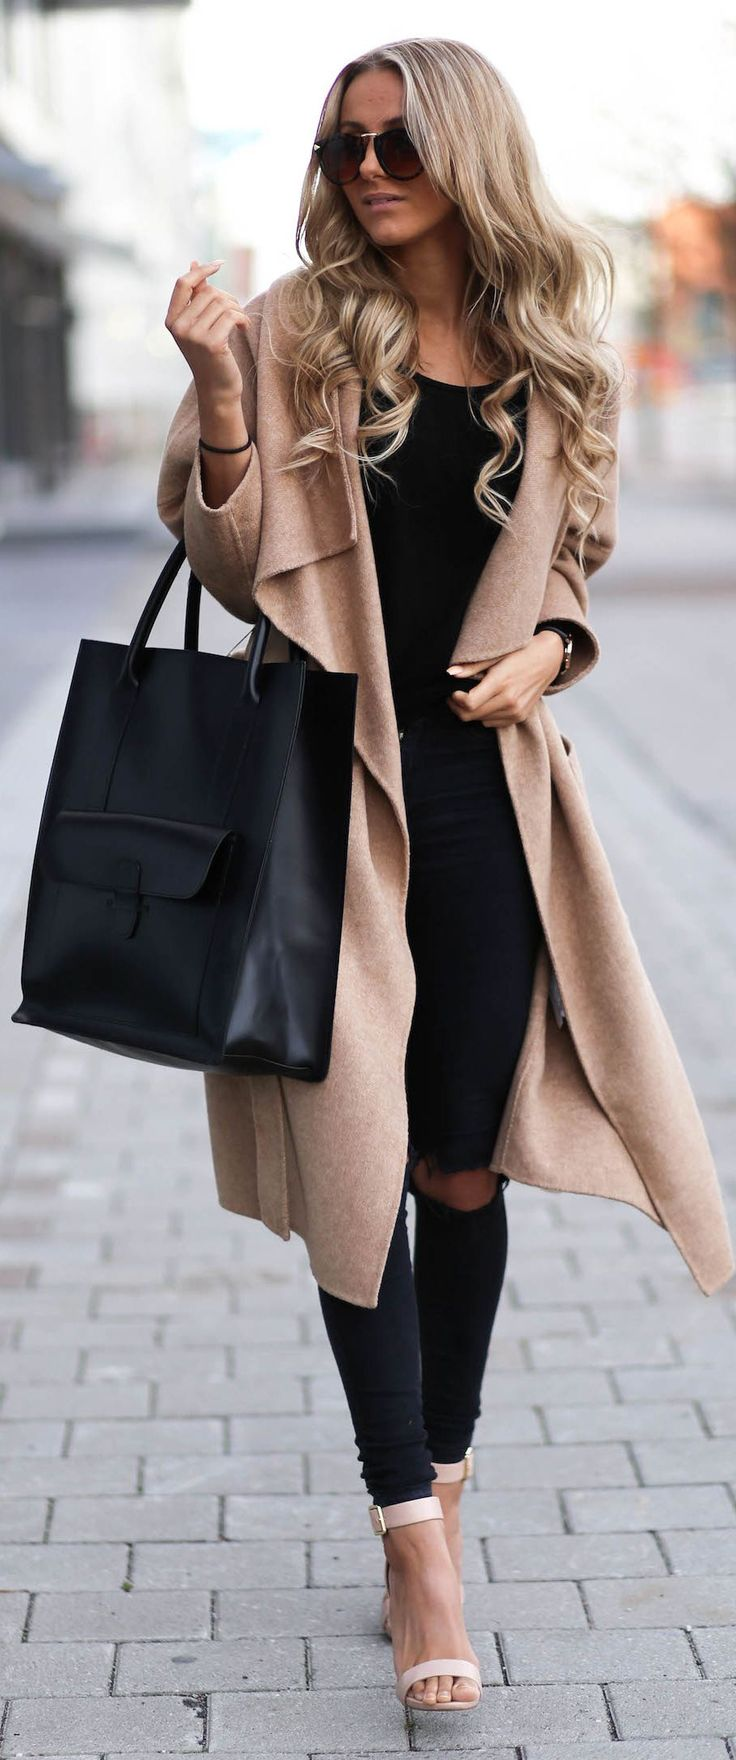 Street style outfit and camel coat.Use the coupon code:Happyday10,get 10% off now. #streetstyle #coupon #fashion